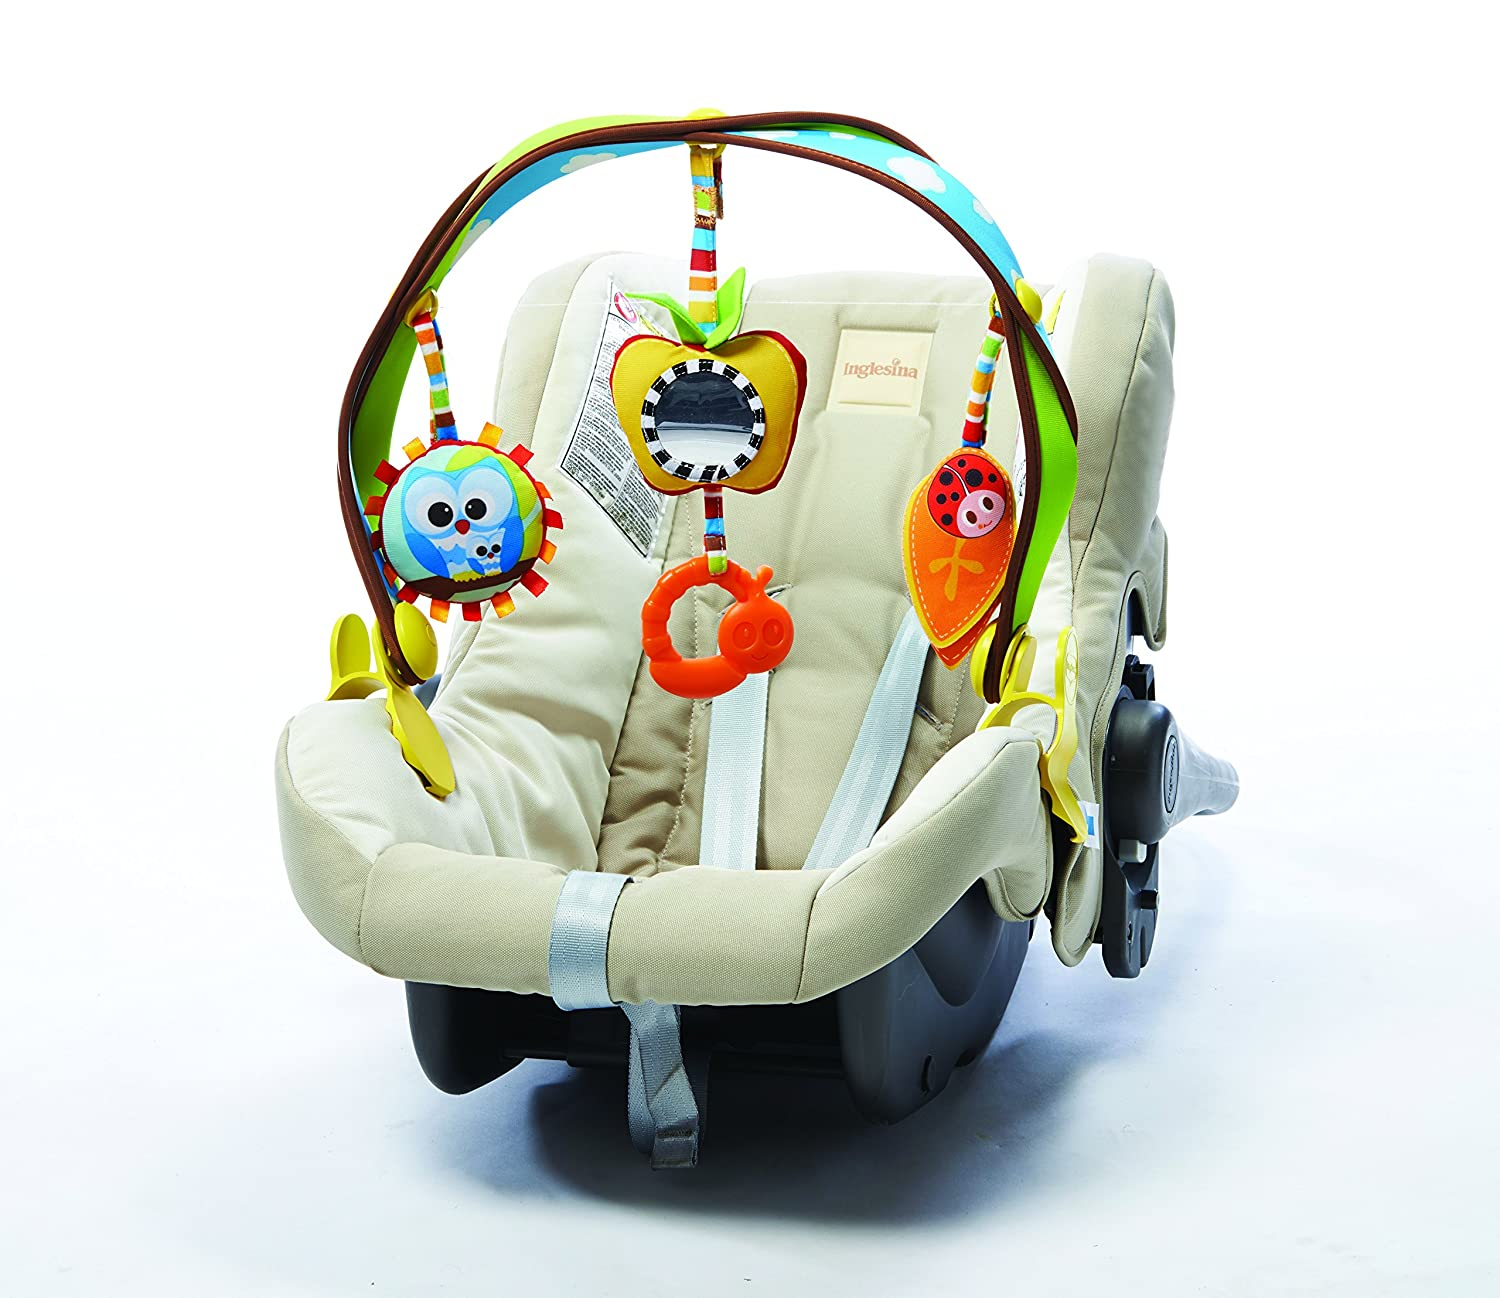 Tiny Love Woodland Take-Along Arch, Stroller Activity Arch, 0 month +, Universal Clips fit any Pram, Pushchair or Baby Car Seat